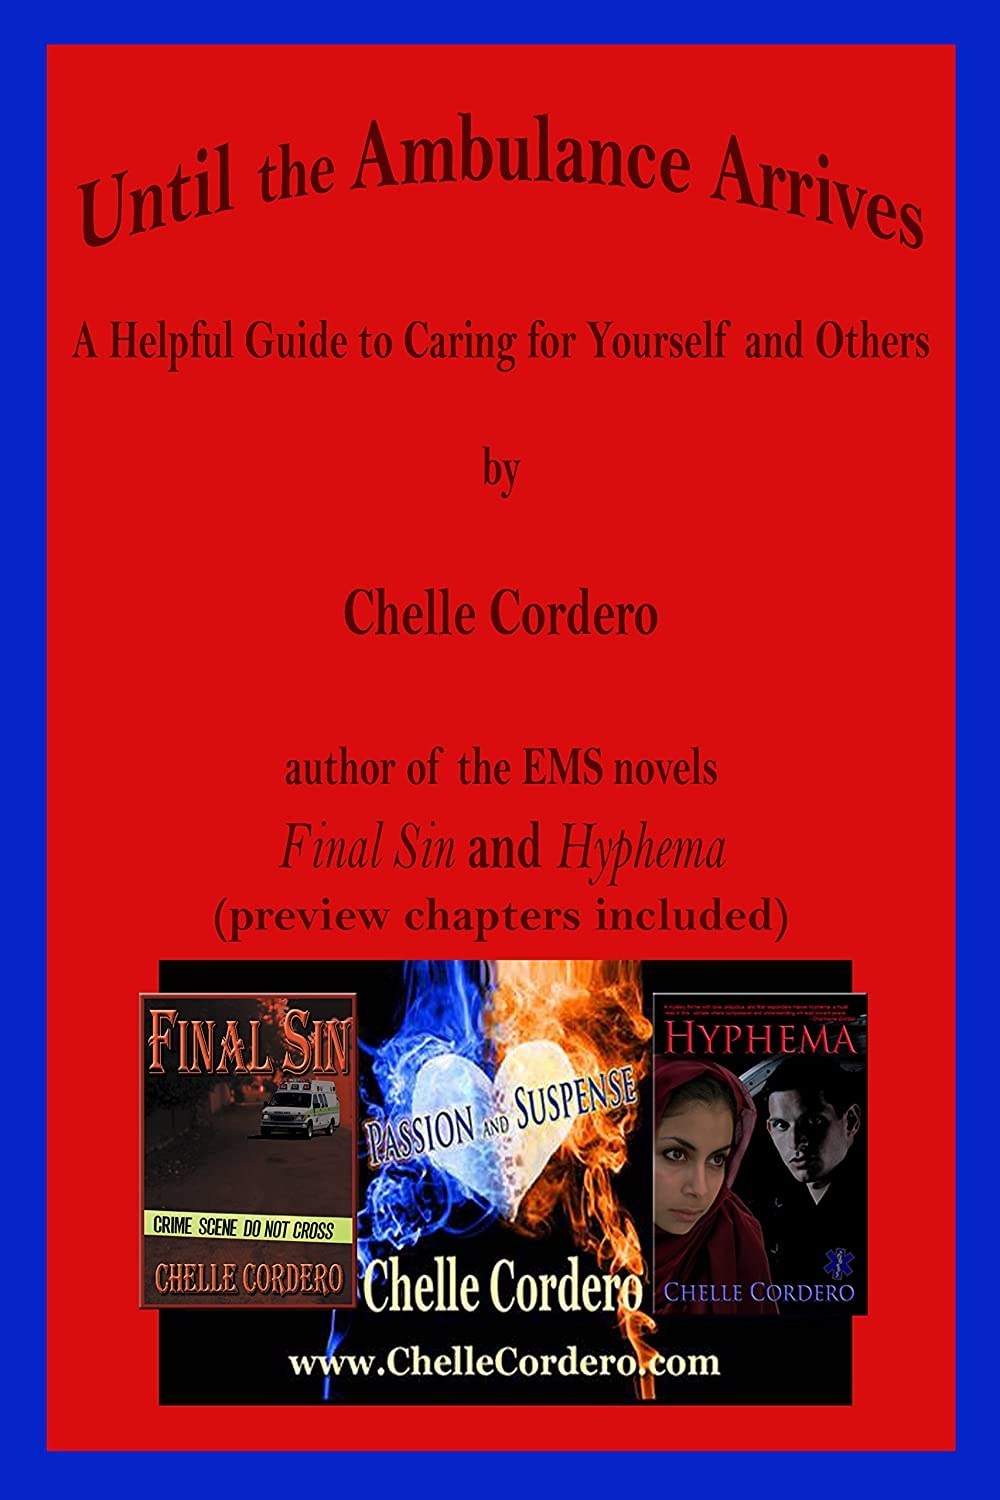 Until the Ambulance Arrives [Kindle Edition] by Chelle Cordero